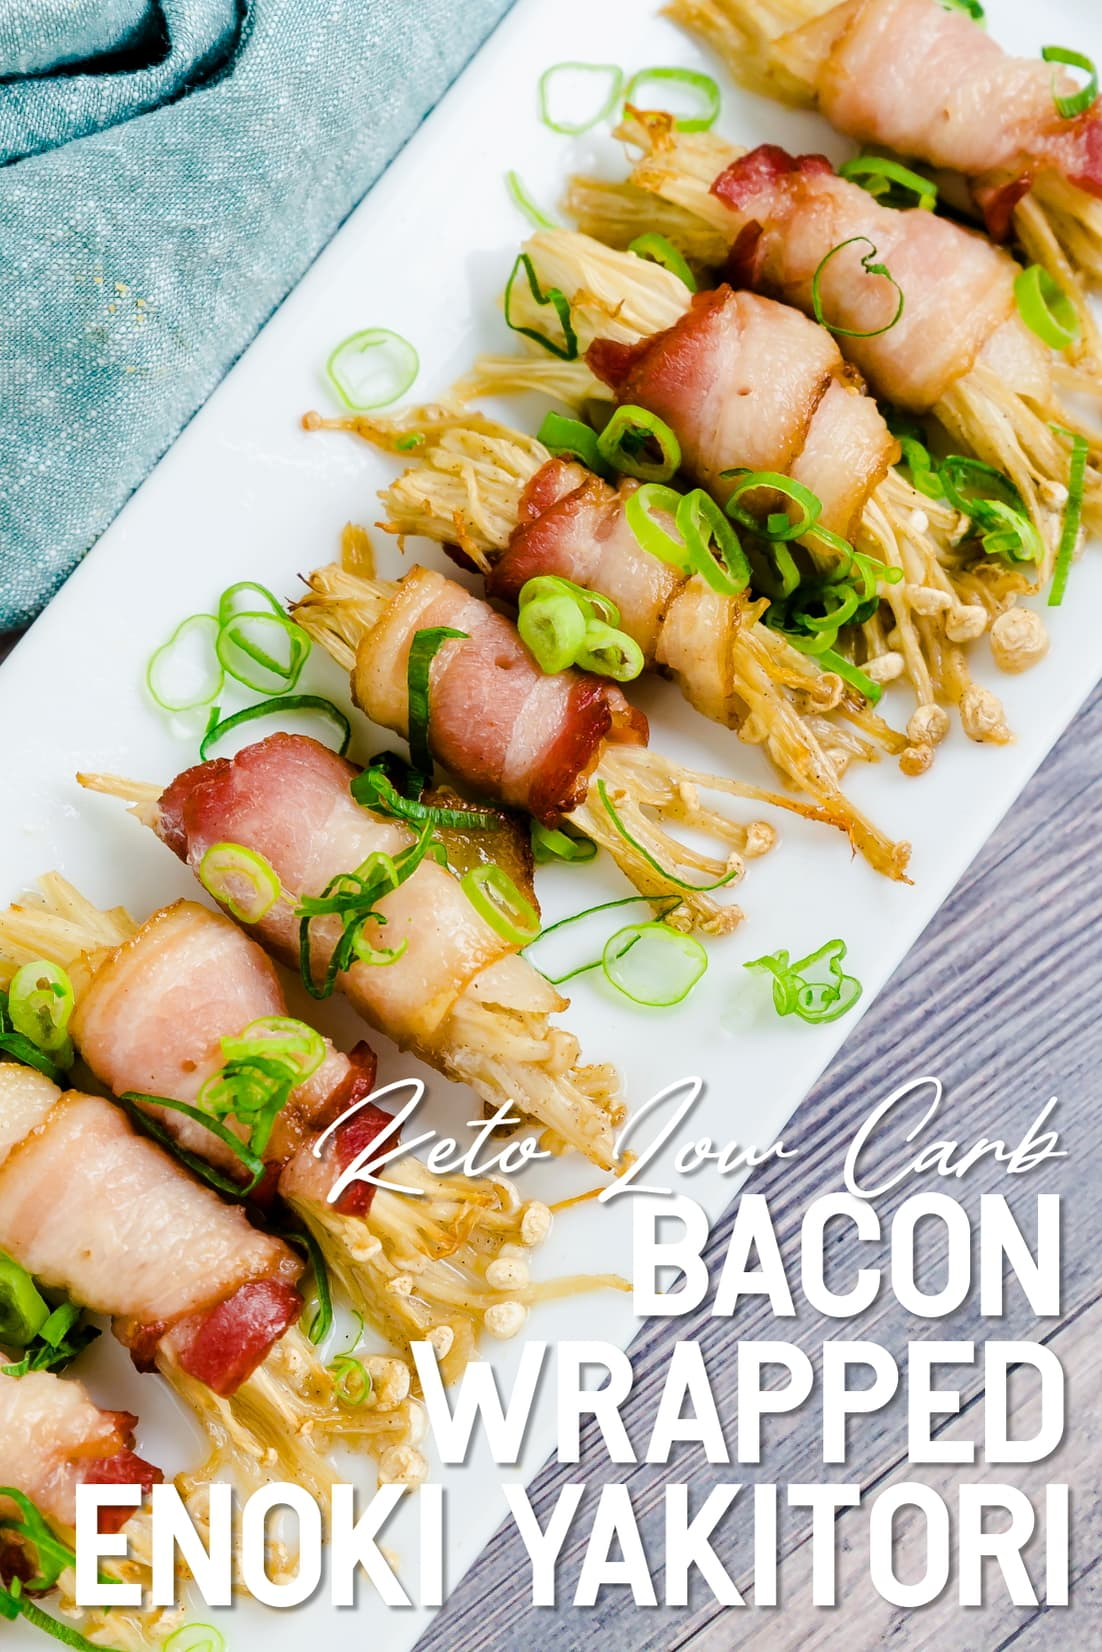 Bacon Wrapped Enoki Yakitori served on a white plate with green onions